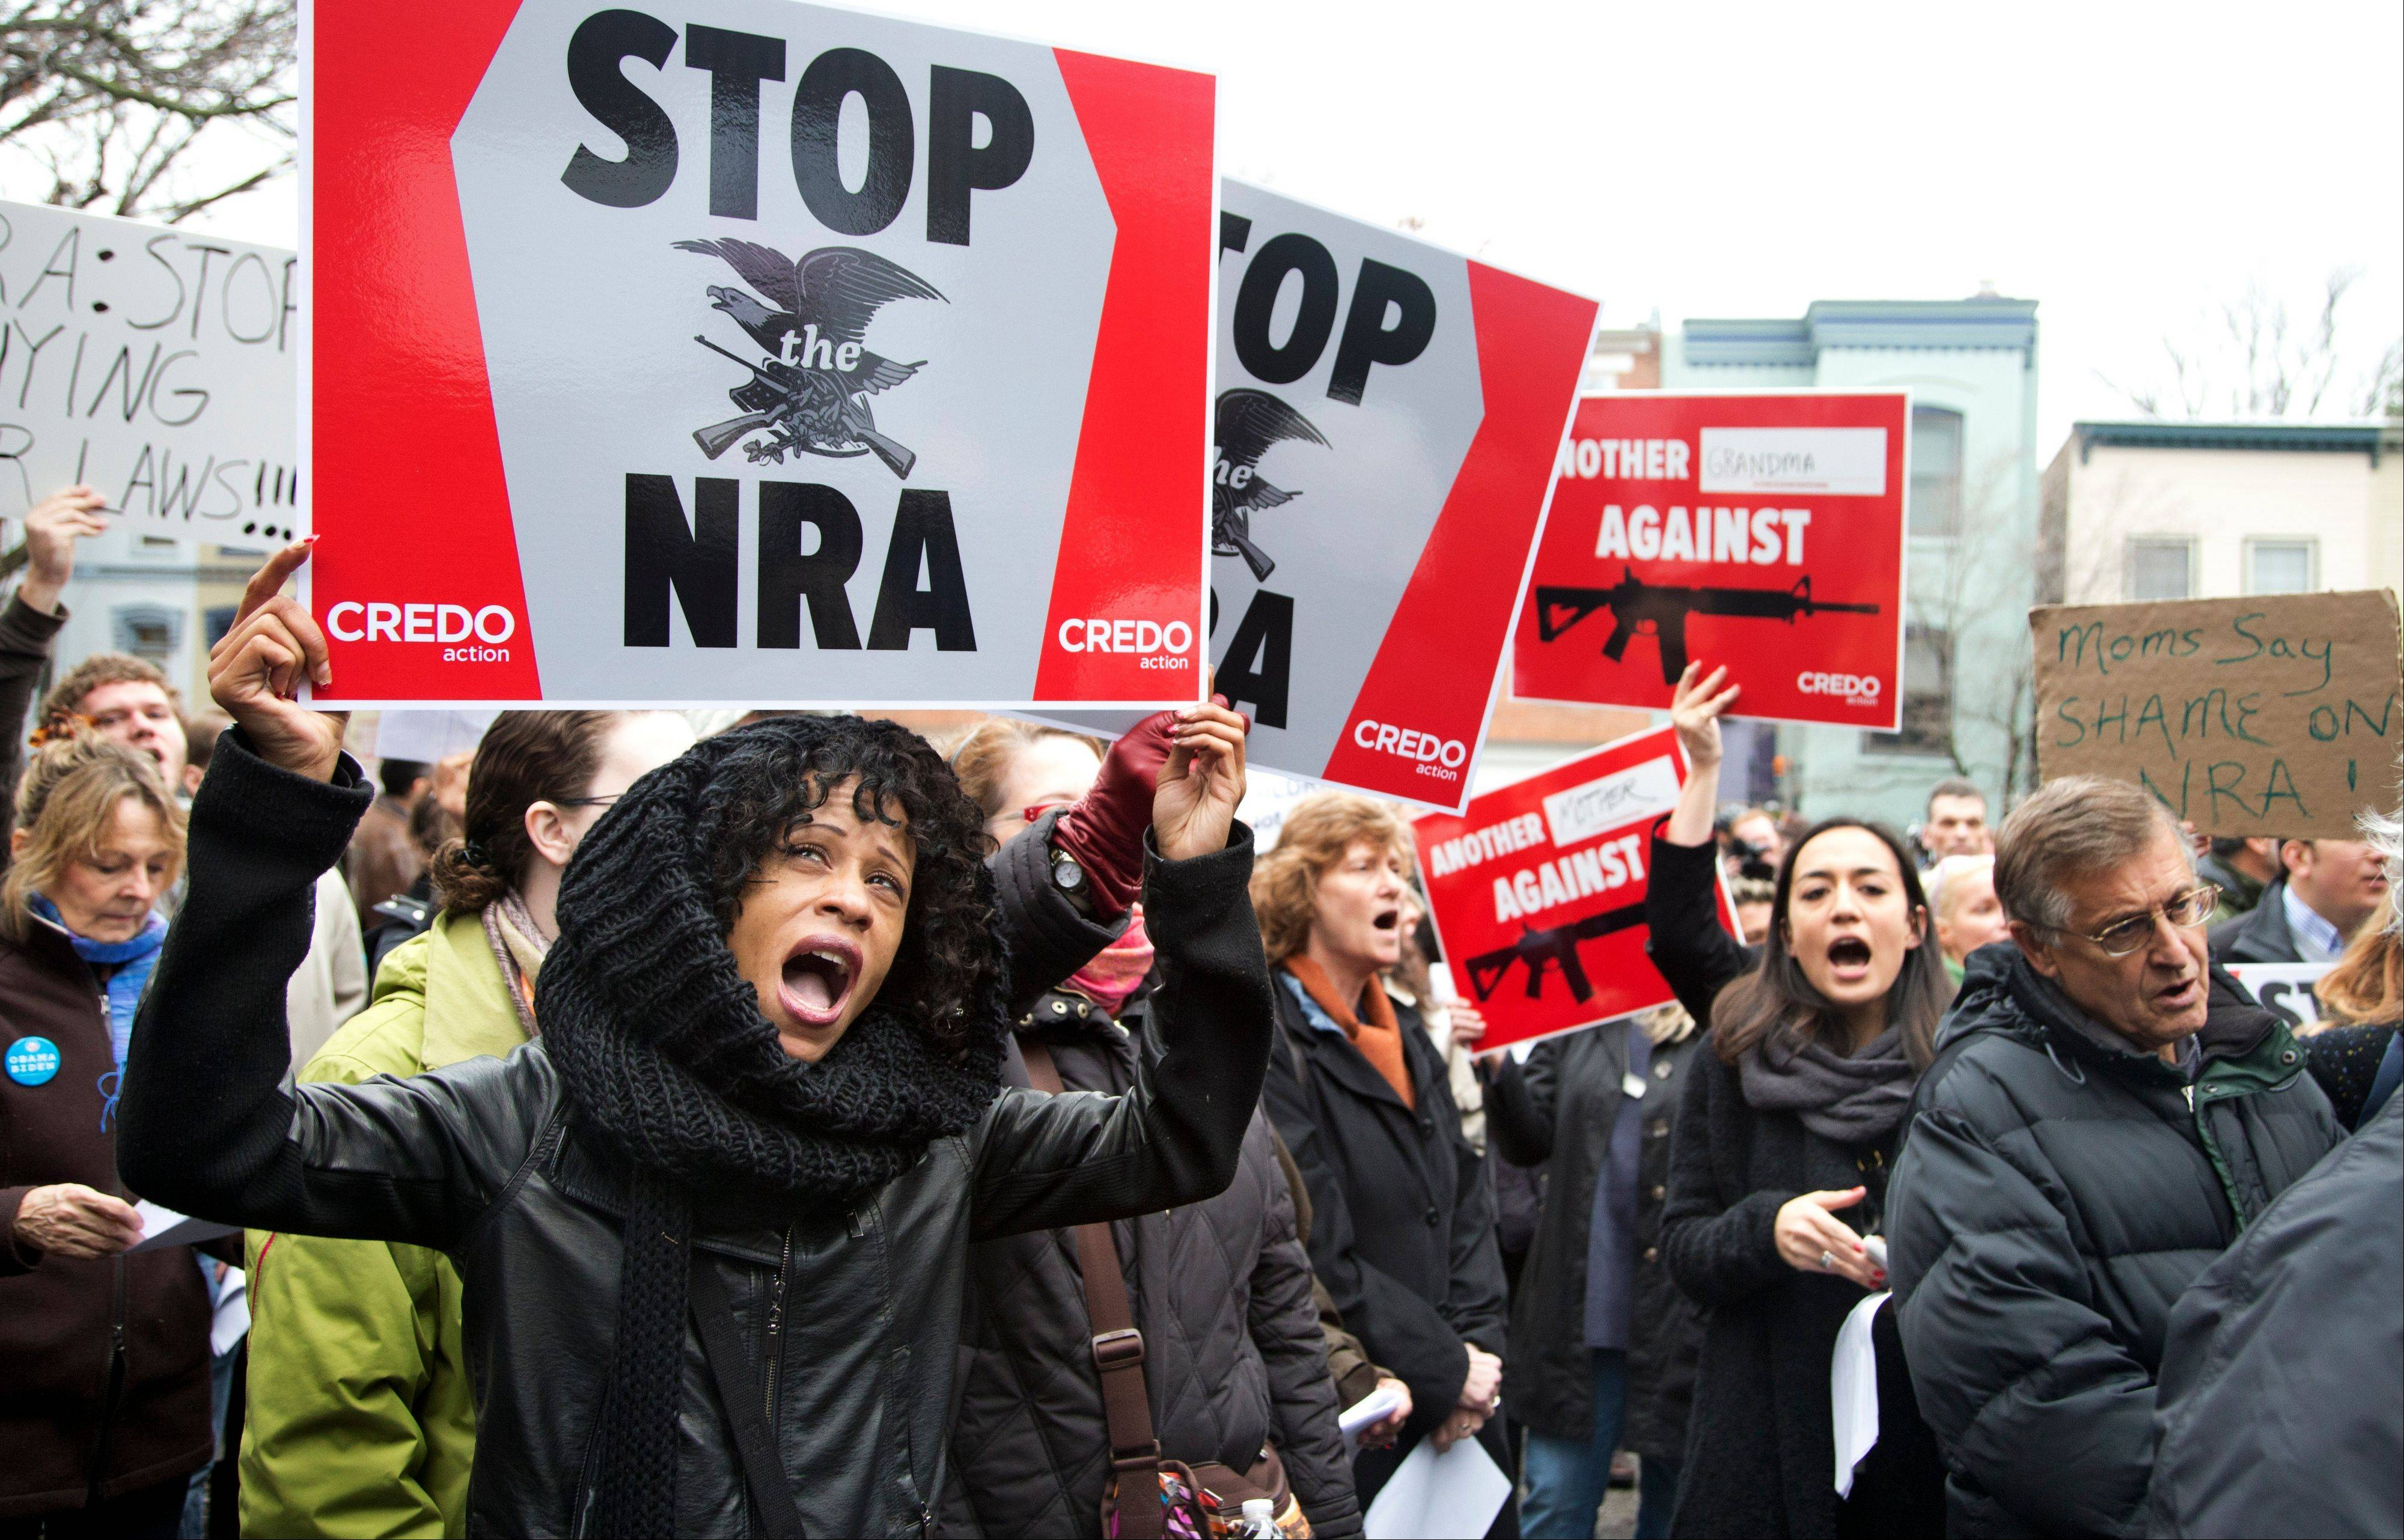 On Monday, the NRA offered no rebuttal as 300 anti-gun protesters marched to its Capitol Hill office.